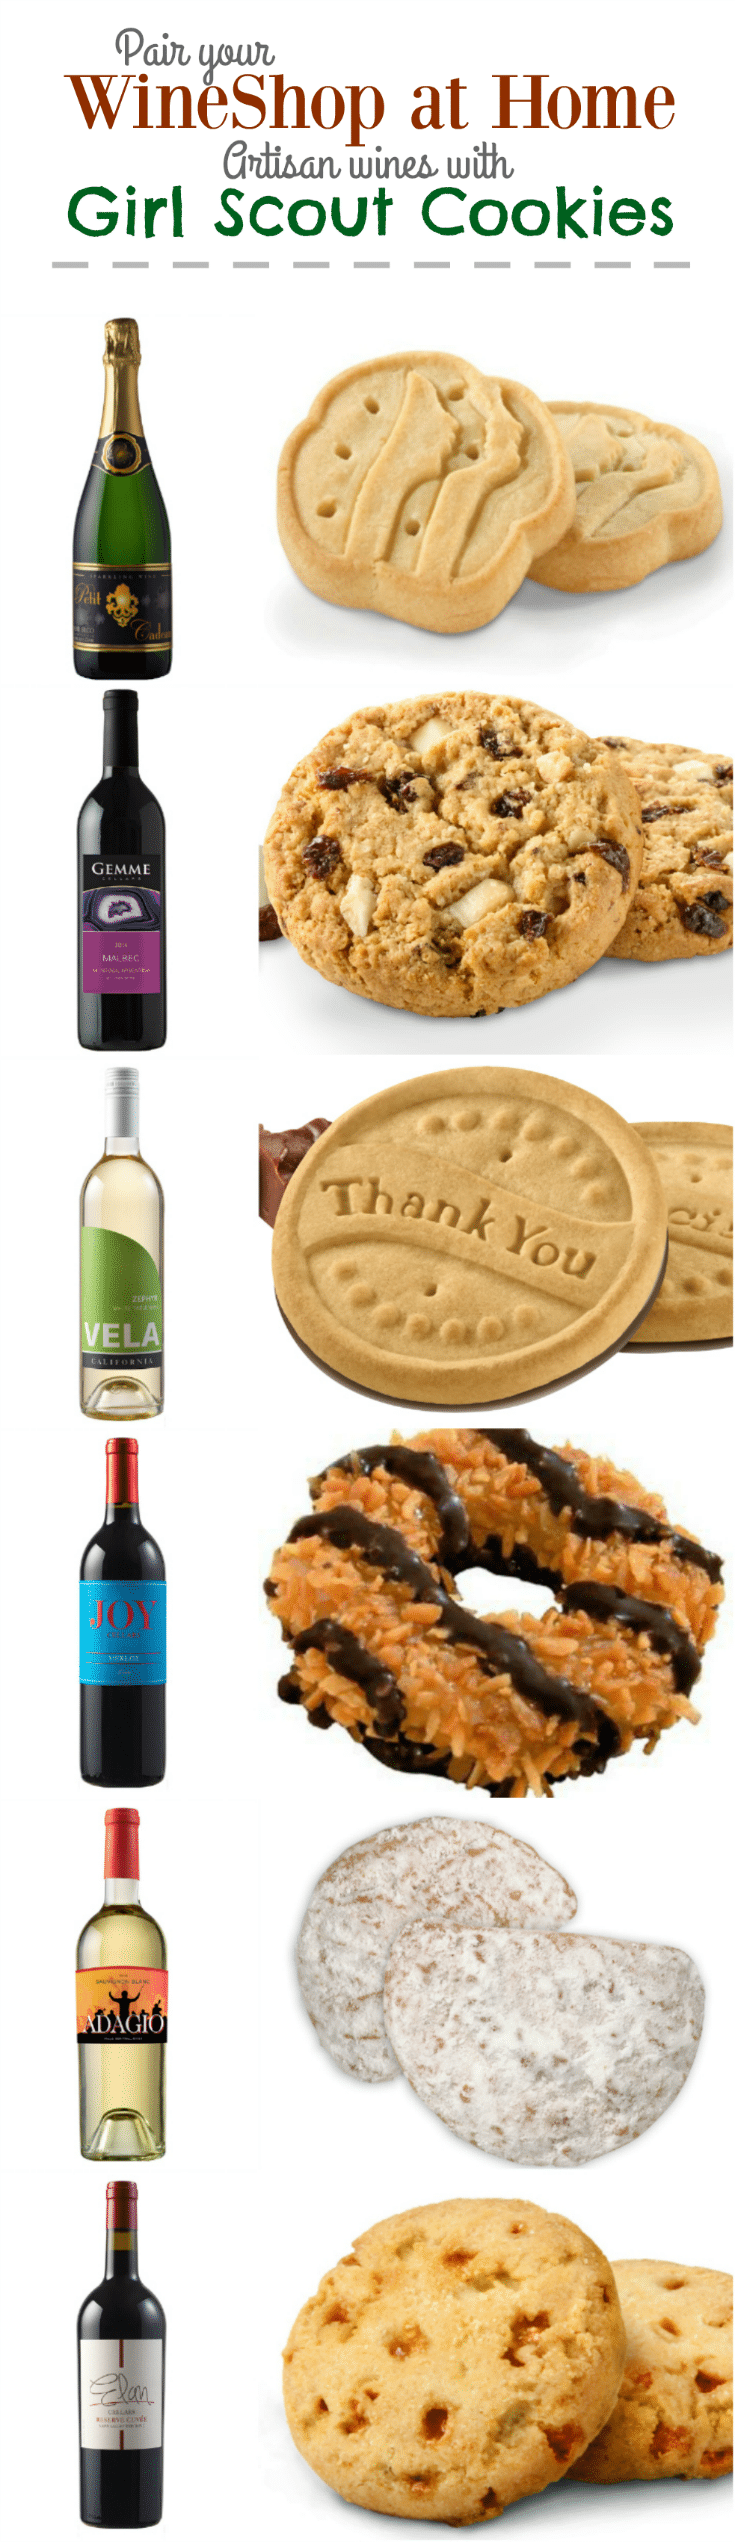 WineShop at Home and Girl Scout Cookies